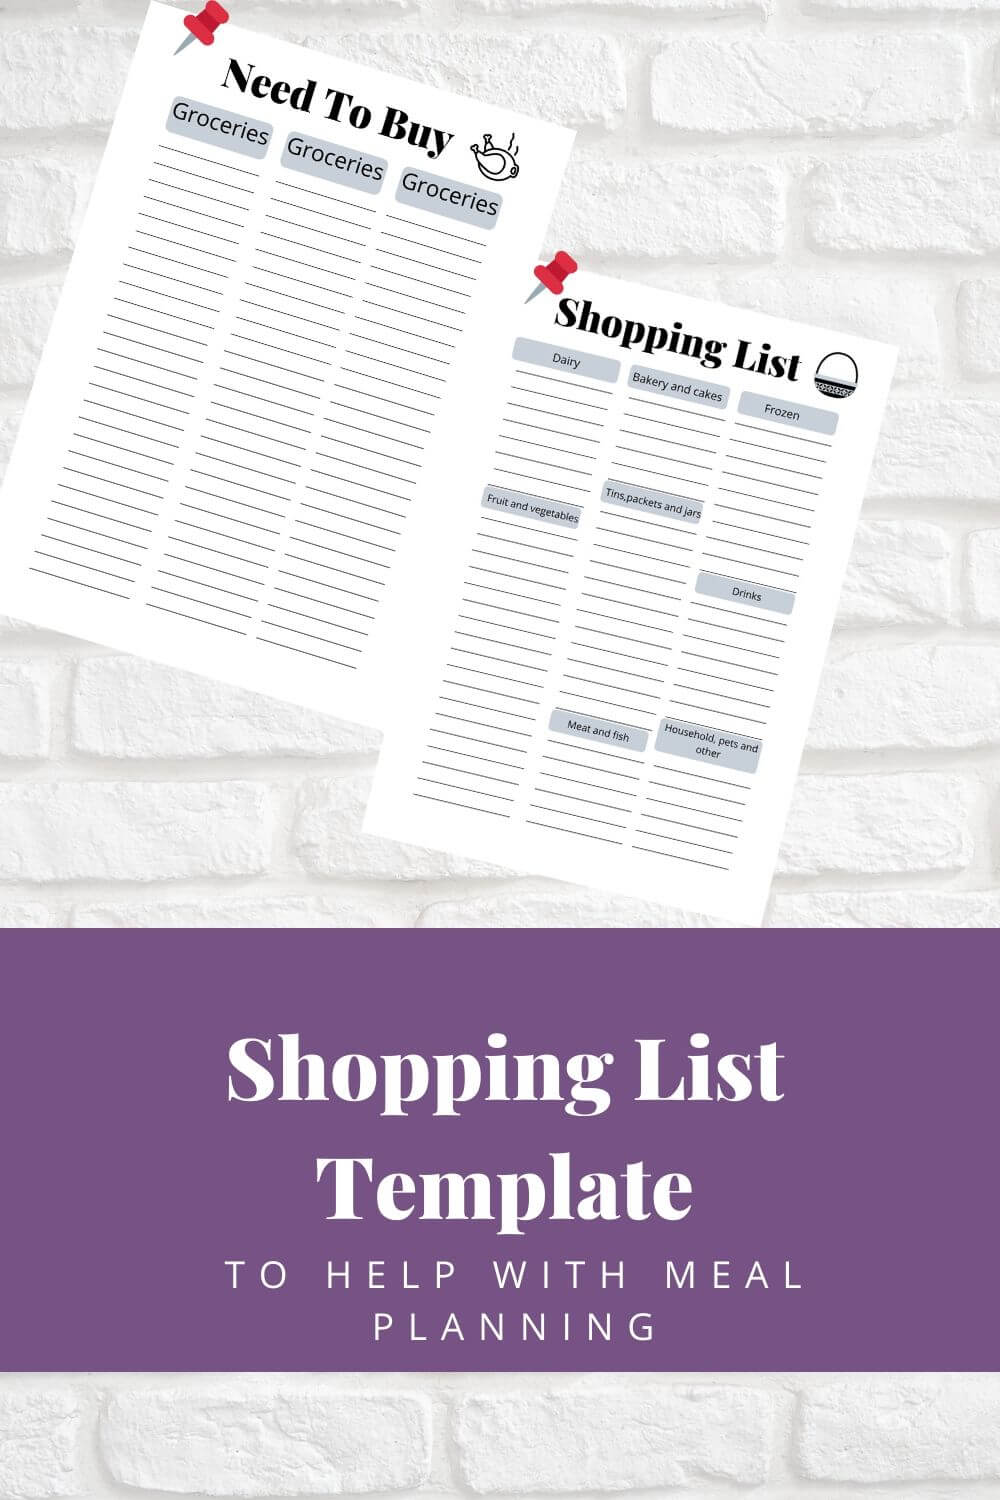 Printable shopping list templates so you get everything you need when you go to the shops